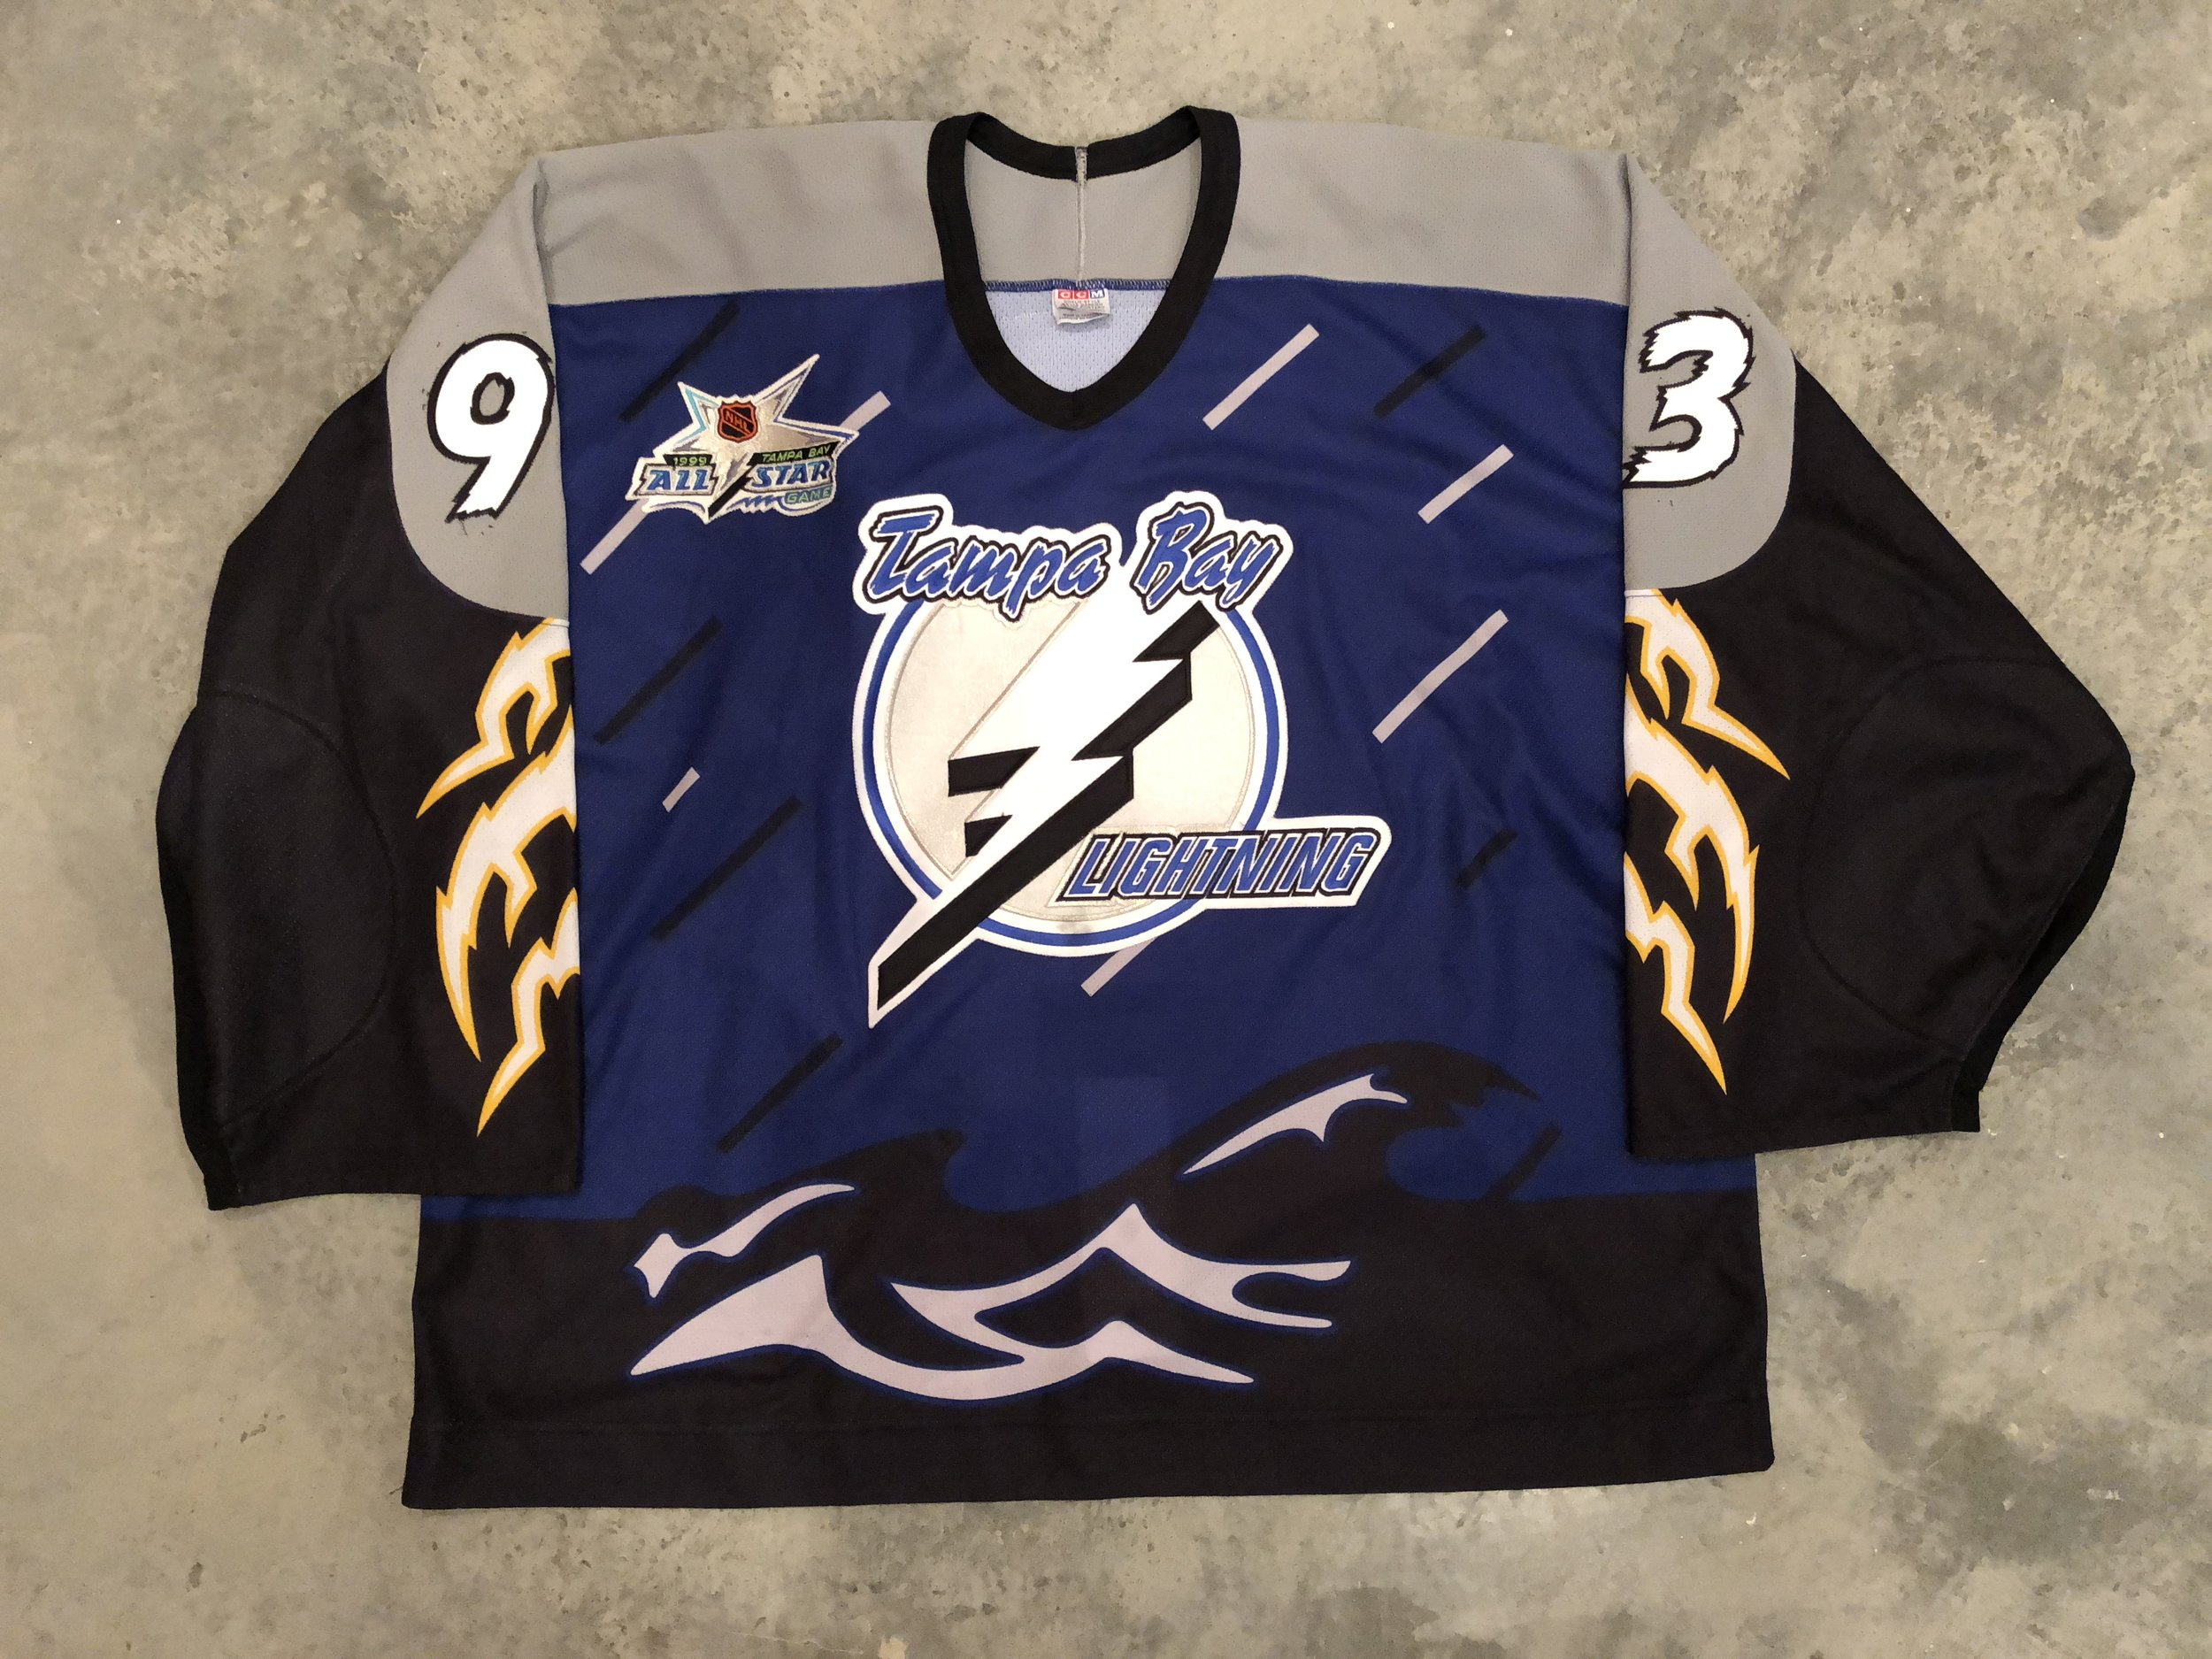 1998-99 Darren Puppa Tampa Bay Lightning Alternate Jersey